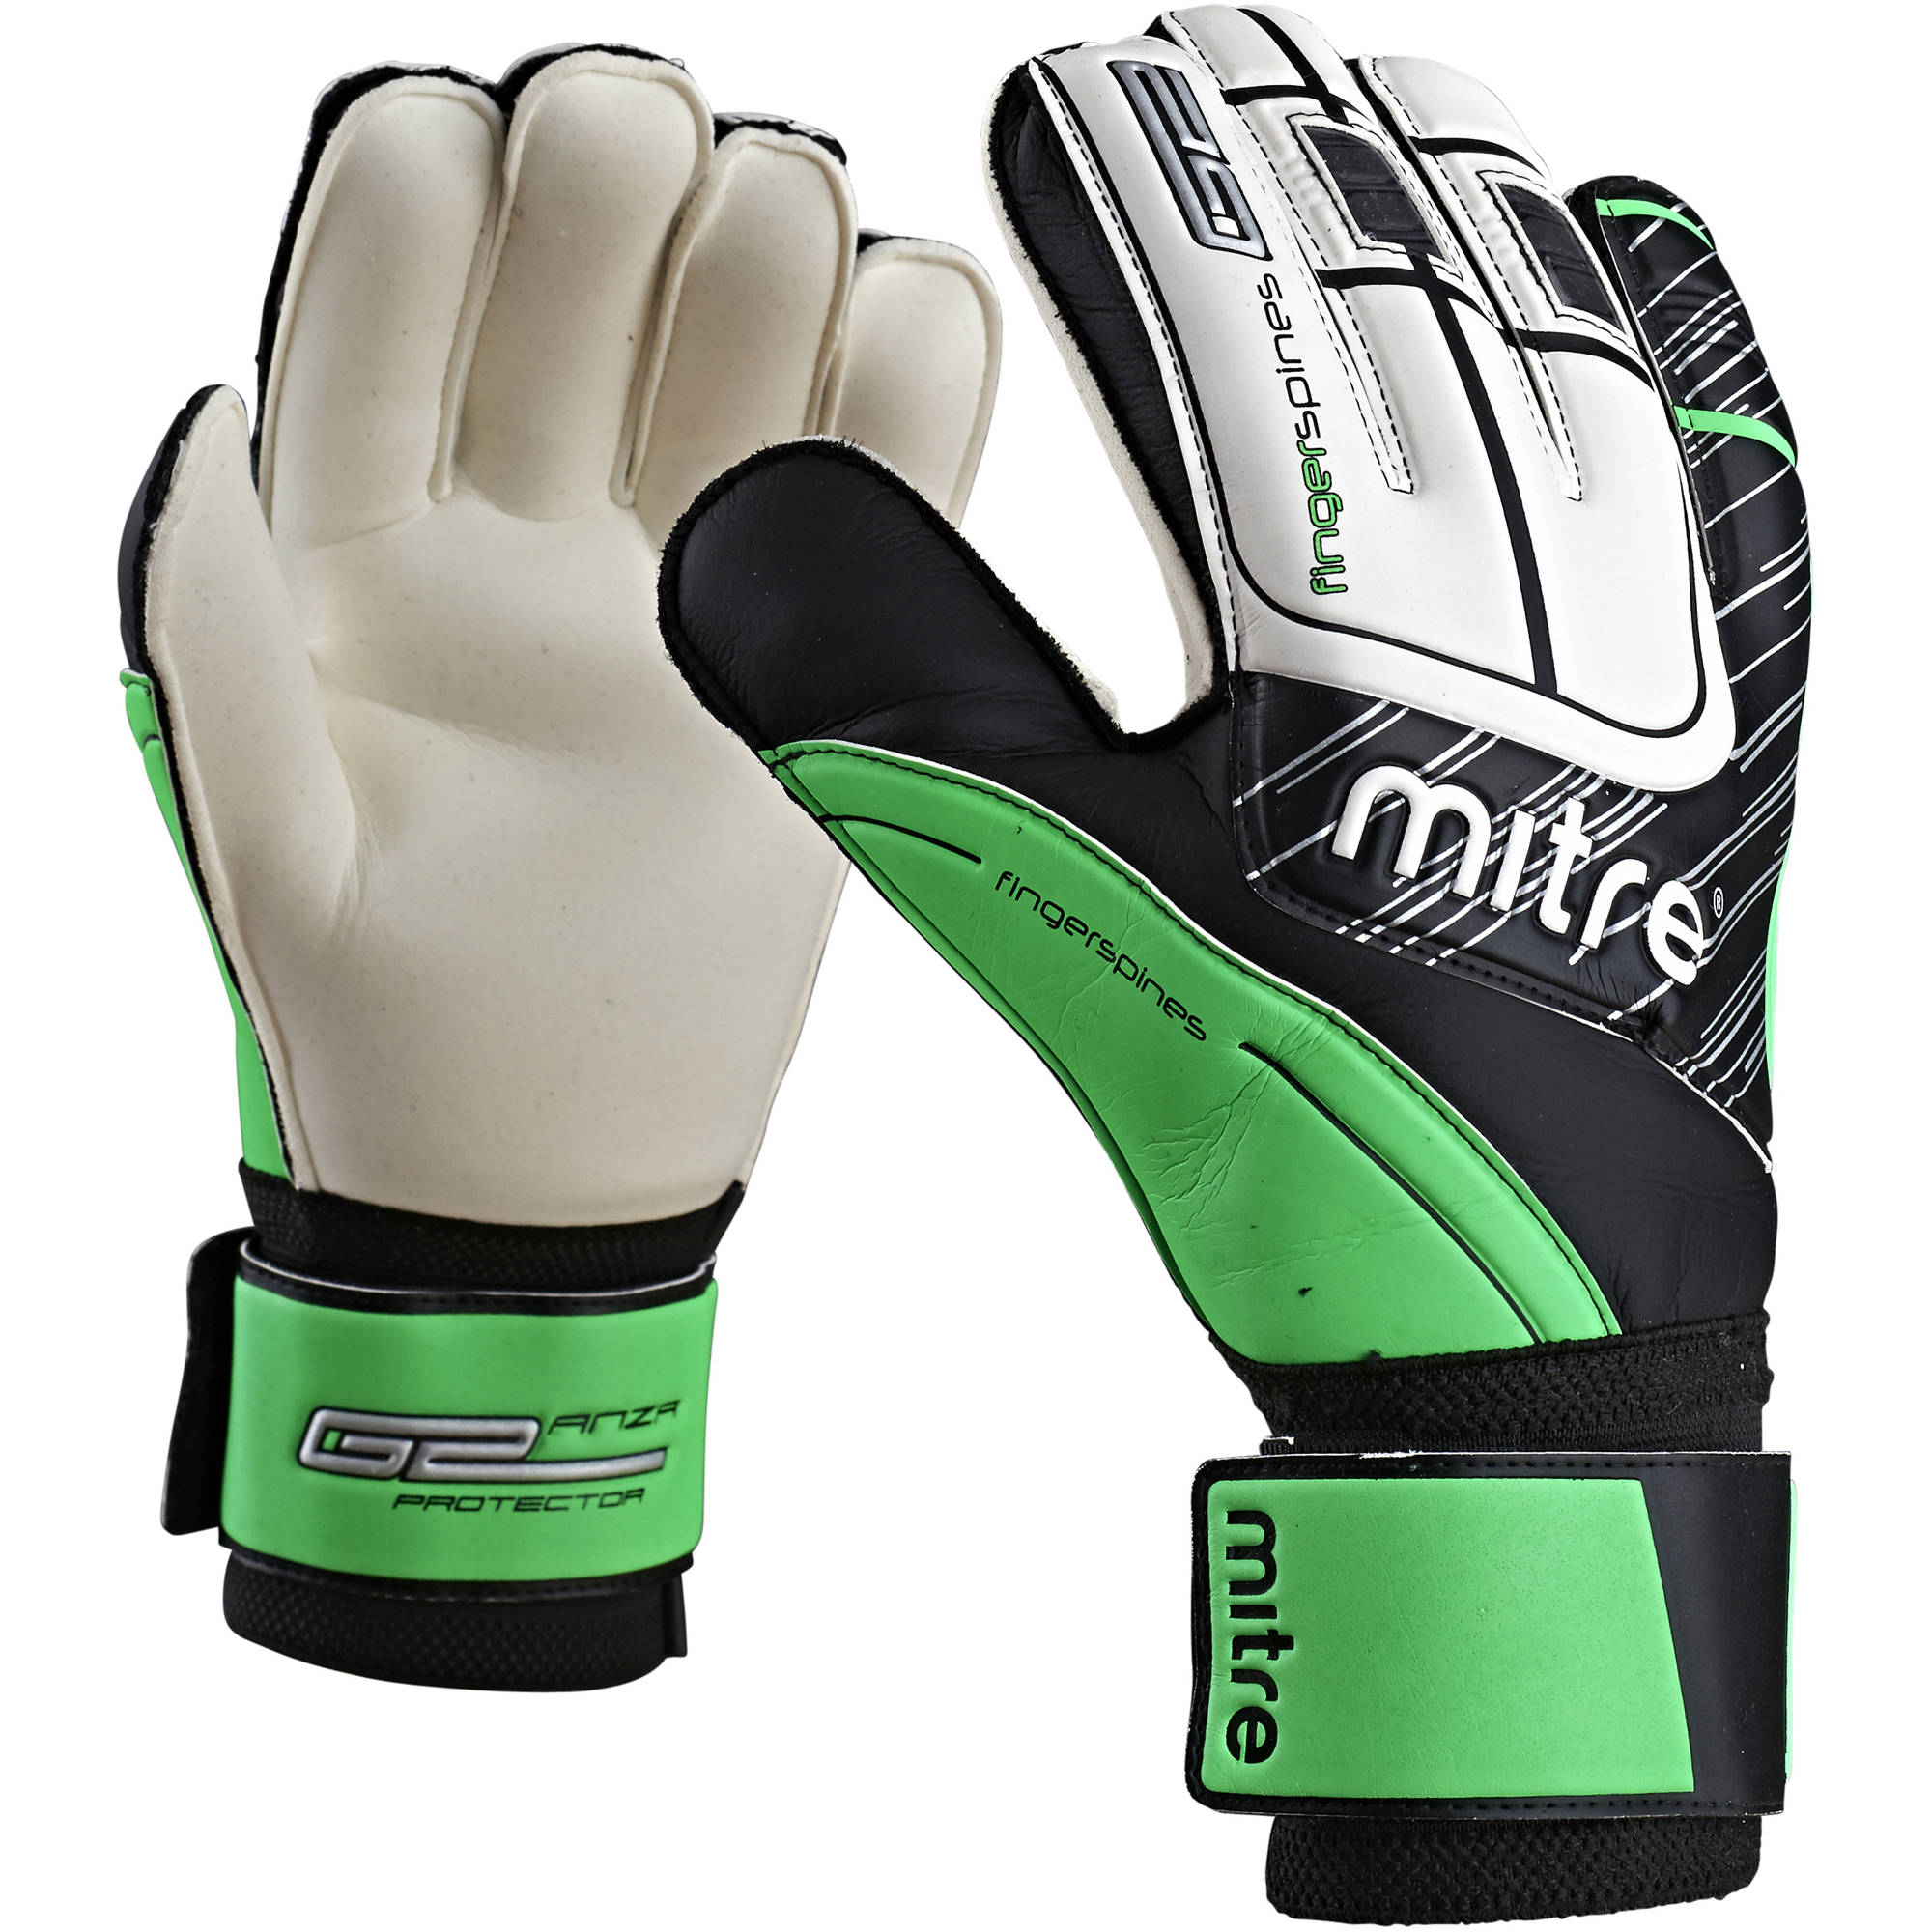 Mitre Anza G2 Protector Goalie Gloves